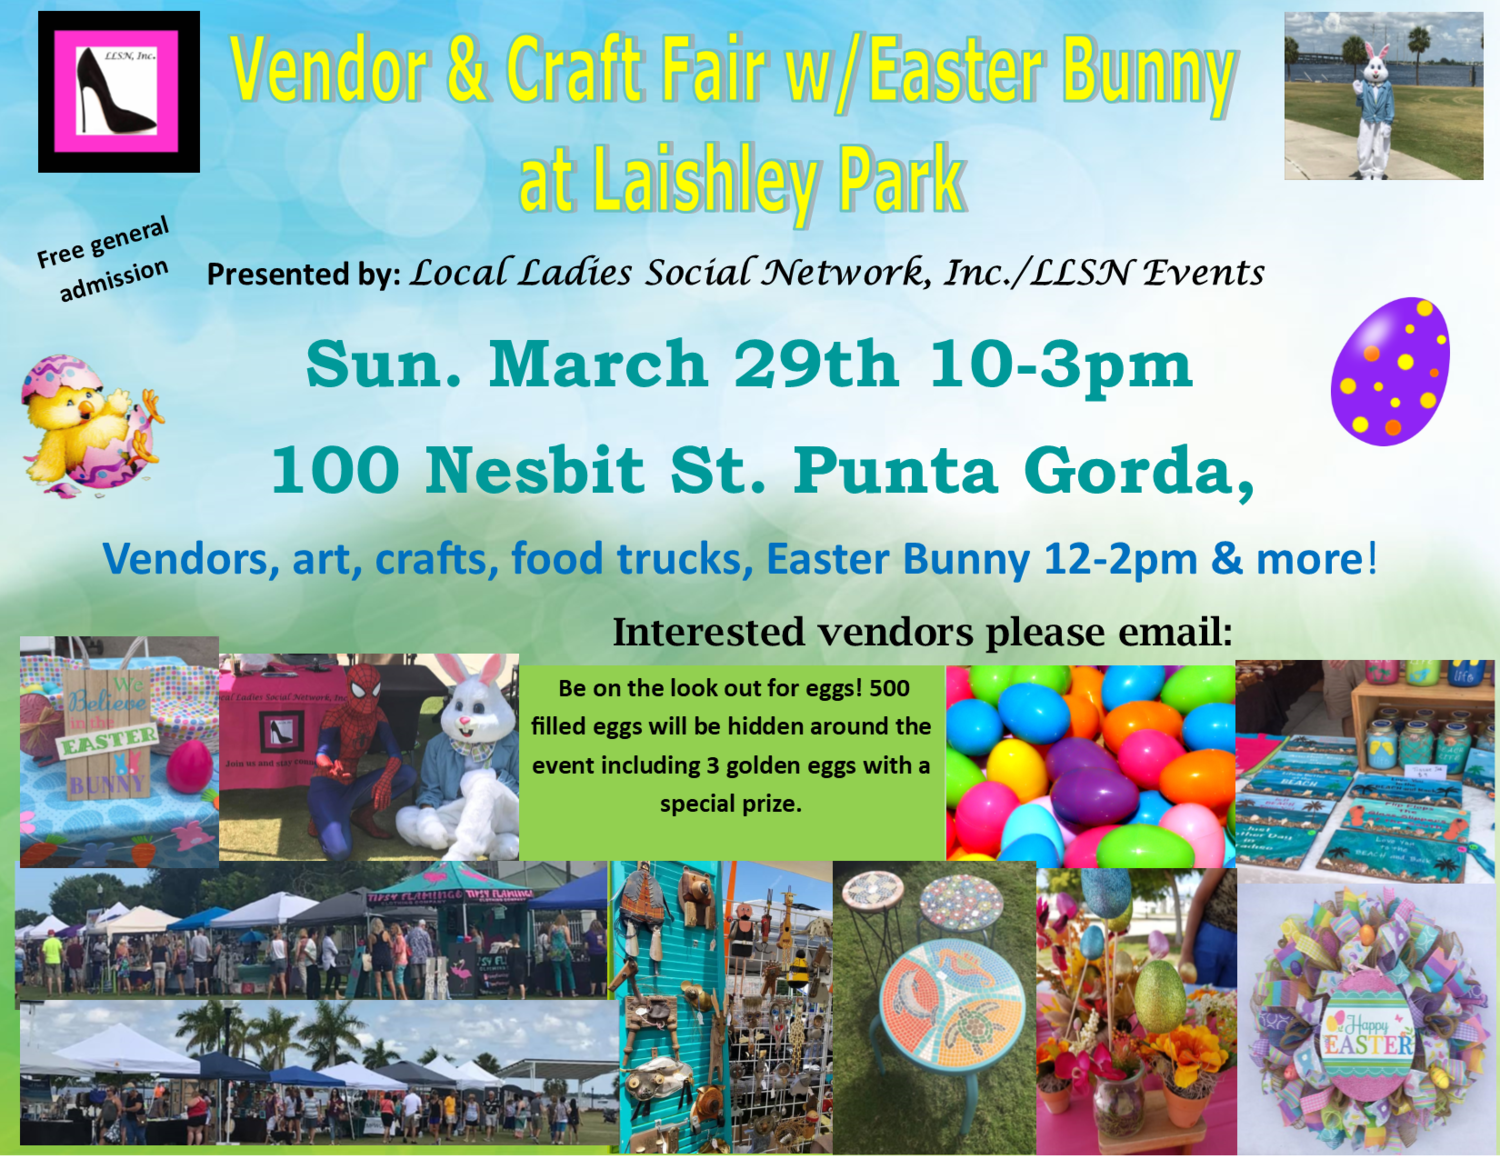 Vendor & Craft Fair w/ Easter Bunny at Laishley Park- March 29th